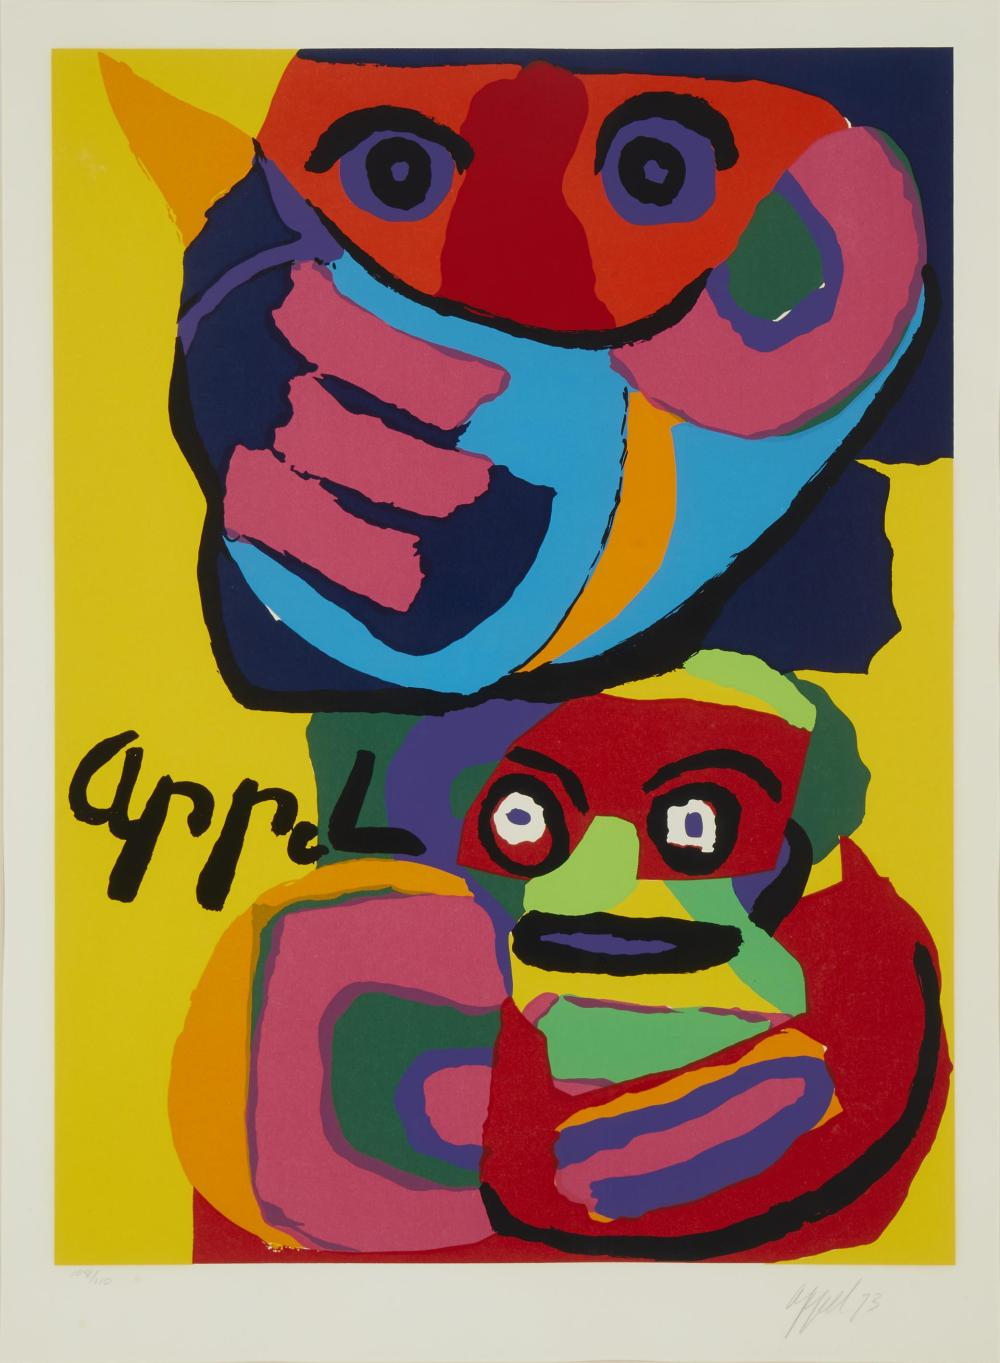 "Karel Christiaan Appel, (1921-2006, Dutch), Composition with faces, 1973, Color serigraph on paper under glass, Sight: 29"" H x 21.25"" W"